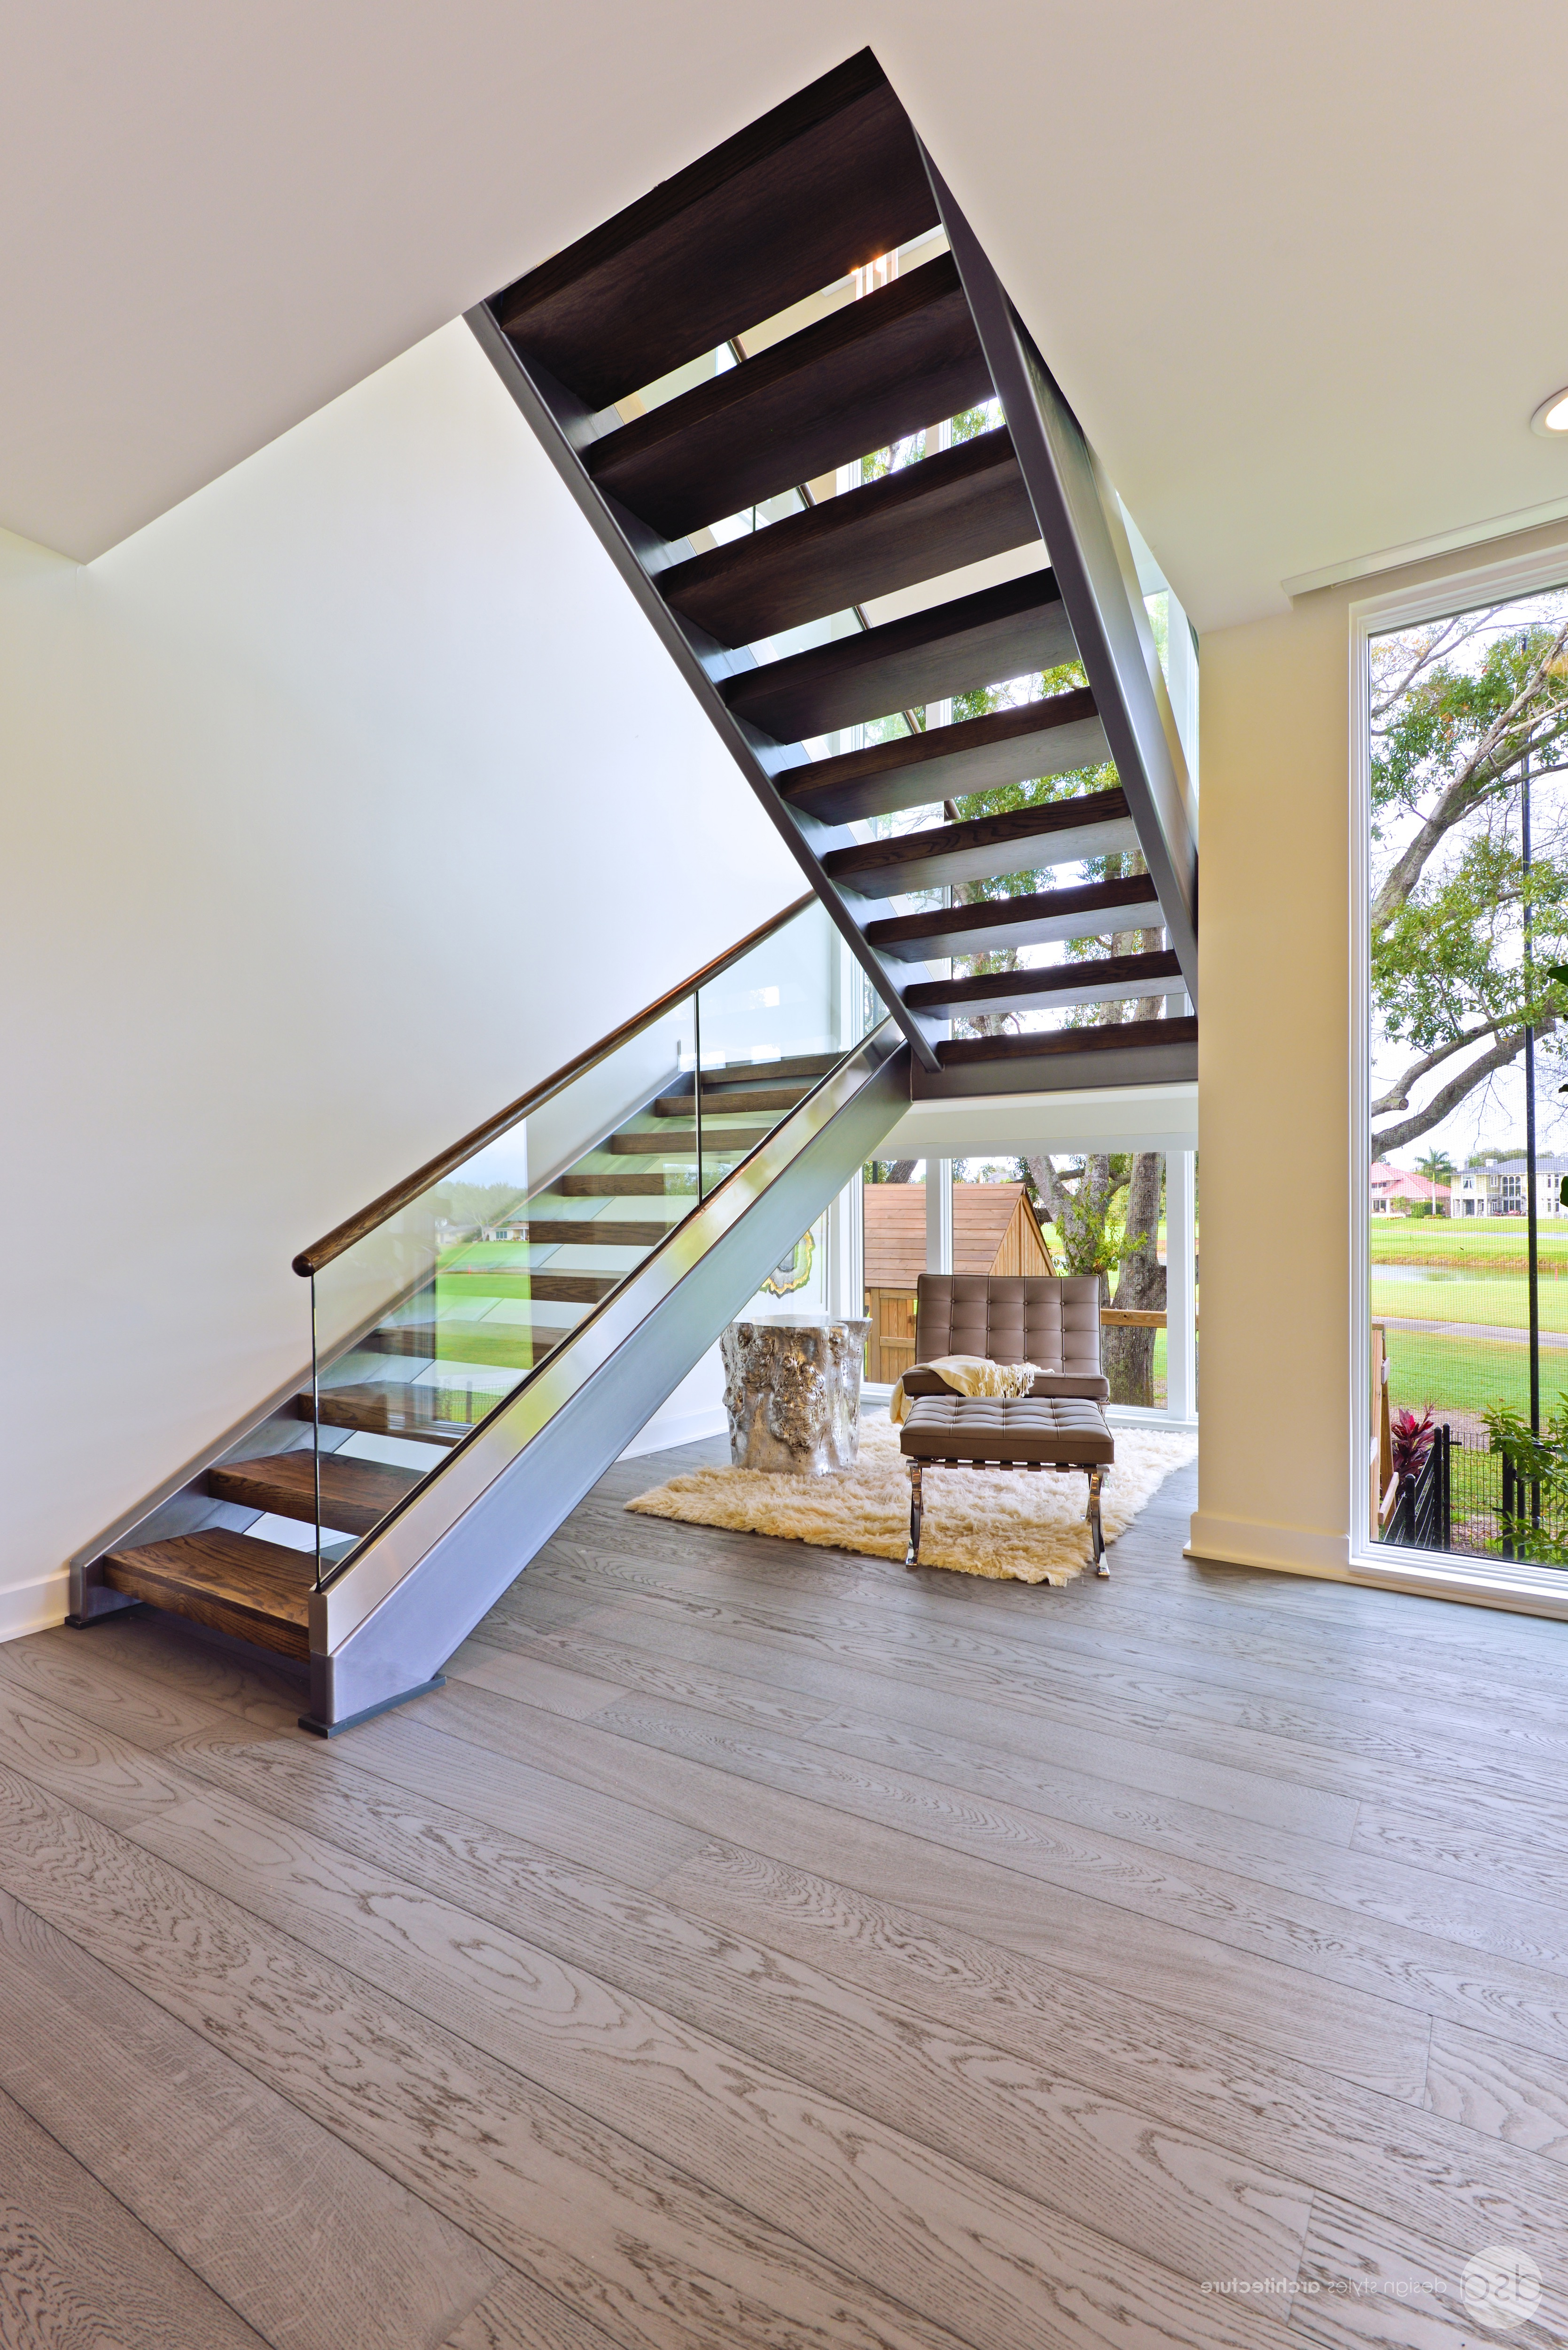 Contemporary Floating Loft Stairs With Glass Railing (Image 1 of 10)